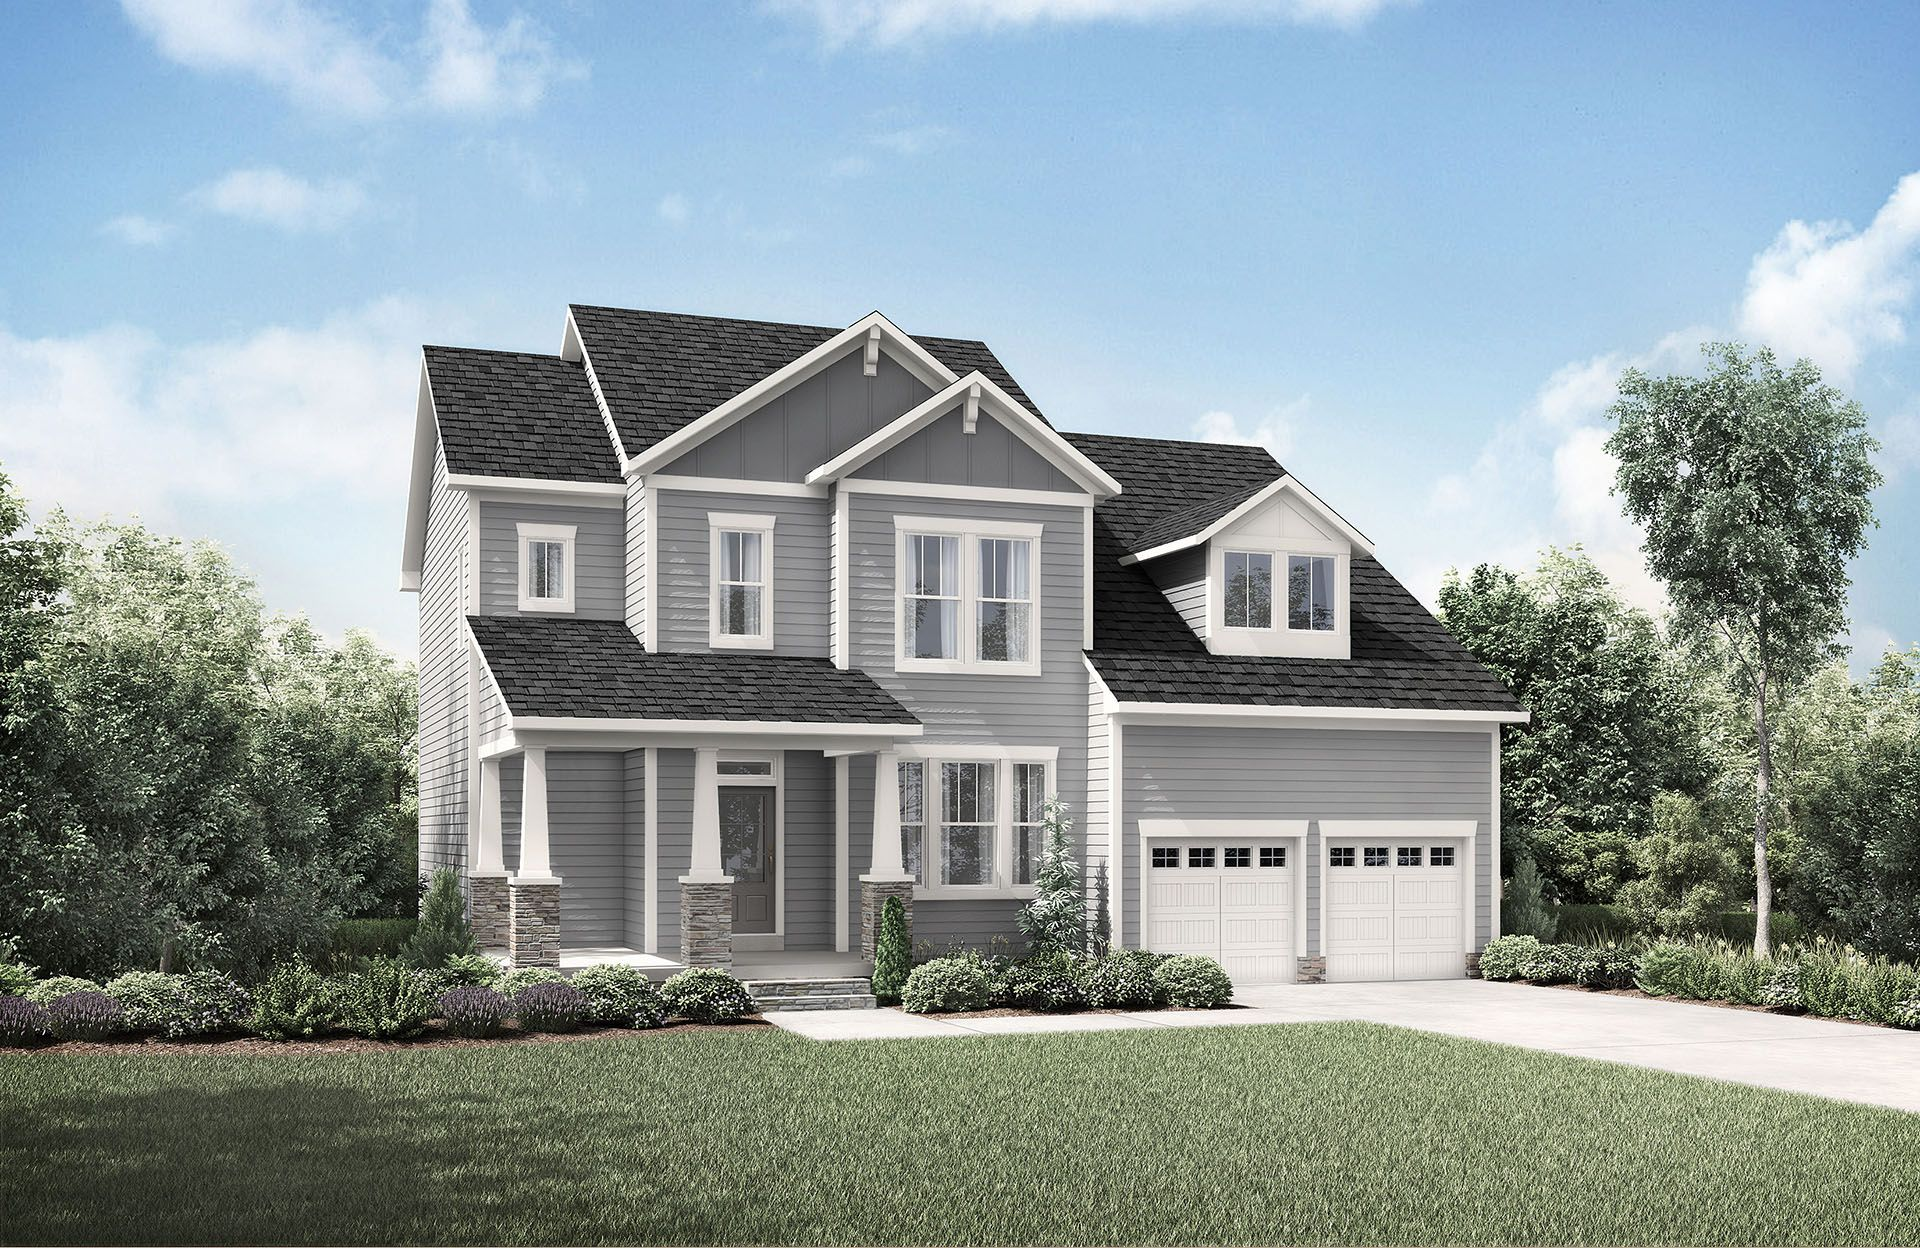 Single Family for Sale at Corbin Creek Woods - Hayes 814 Morelanda Drive Hillsborough, North Carolina 27278 United States